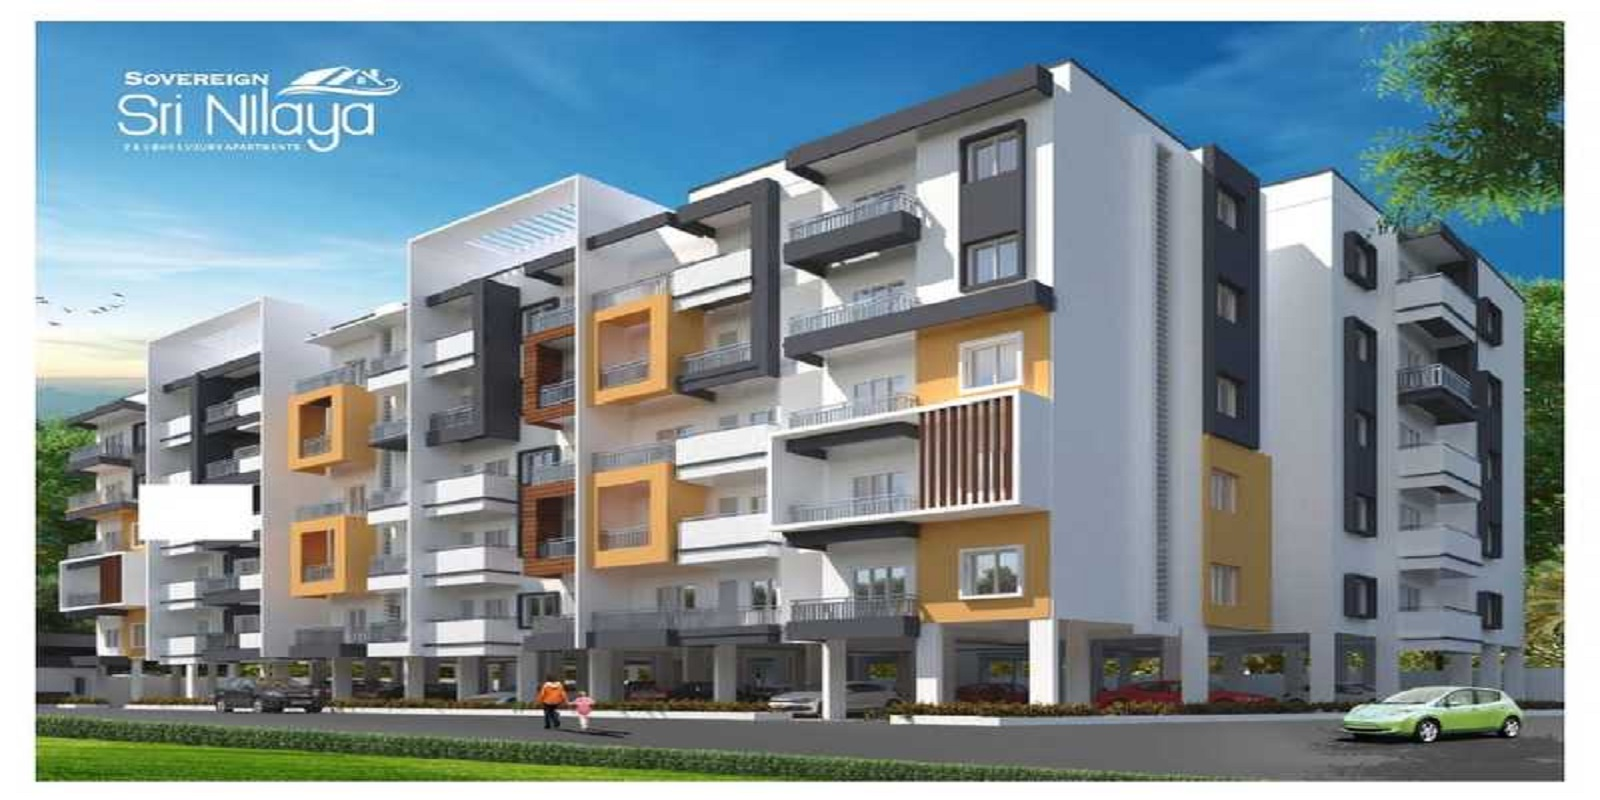 sovereign sri nilaya project project large image1